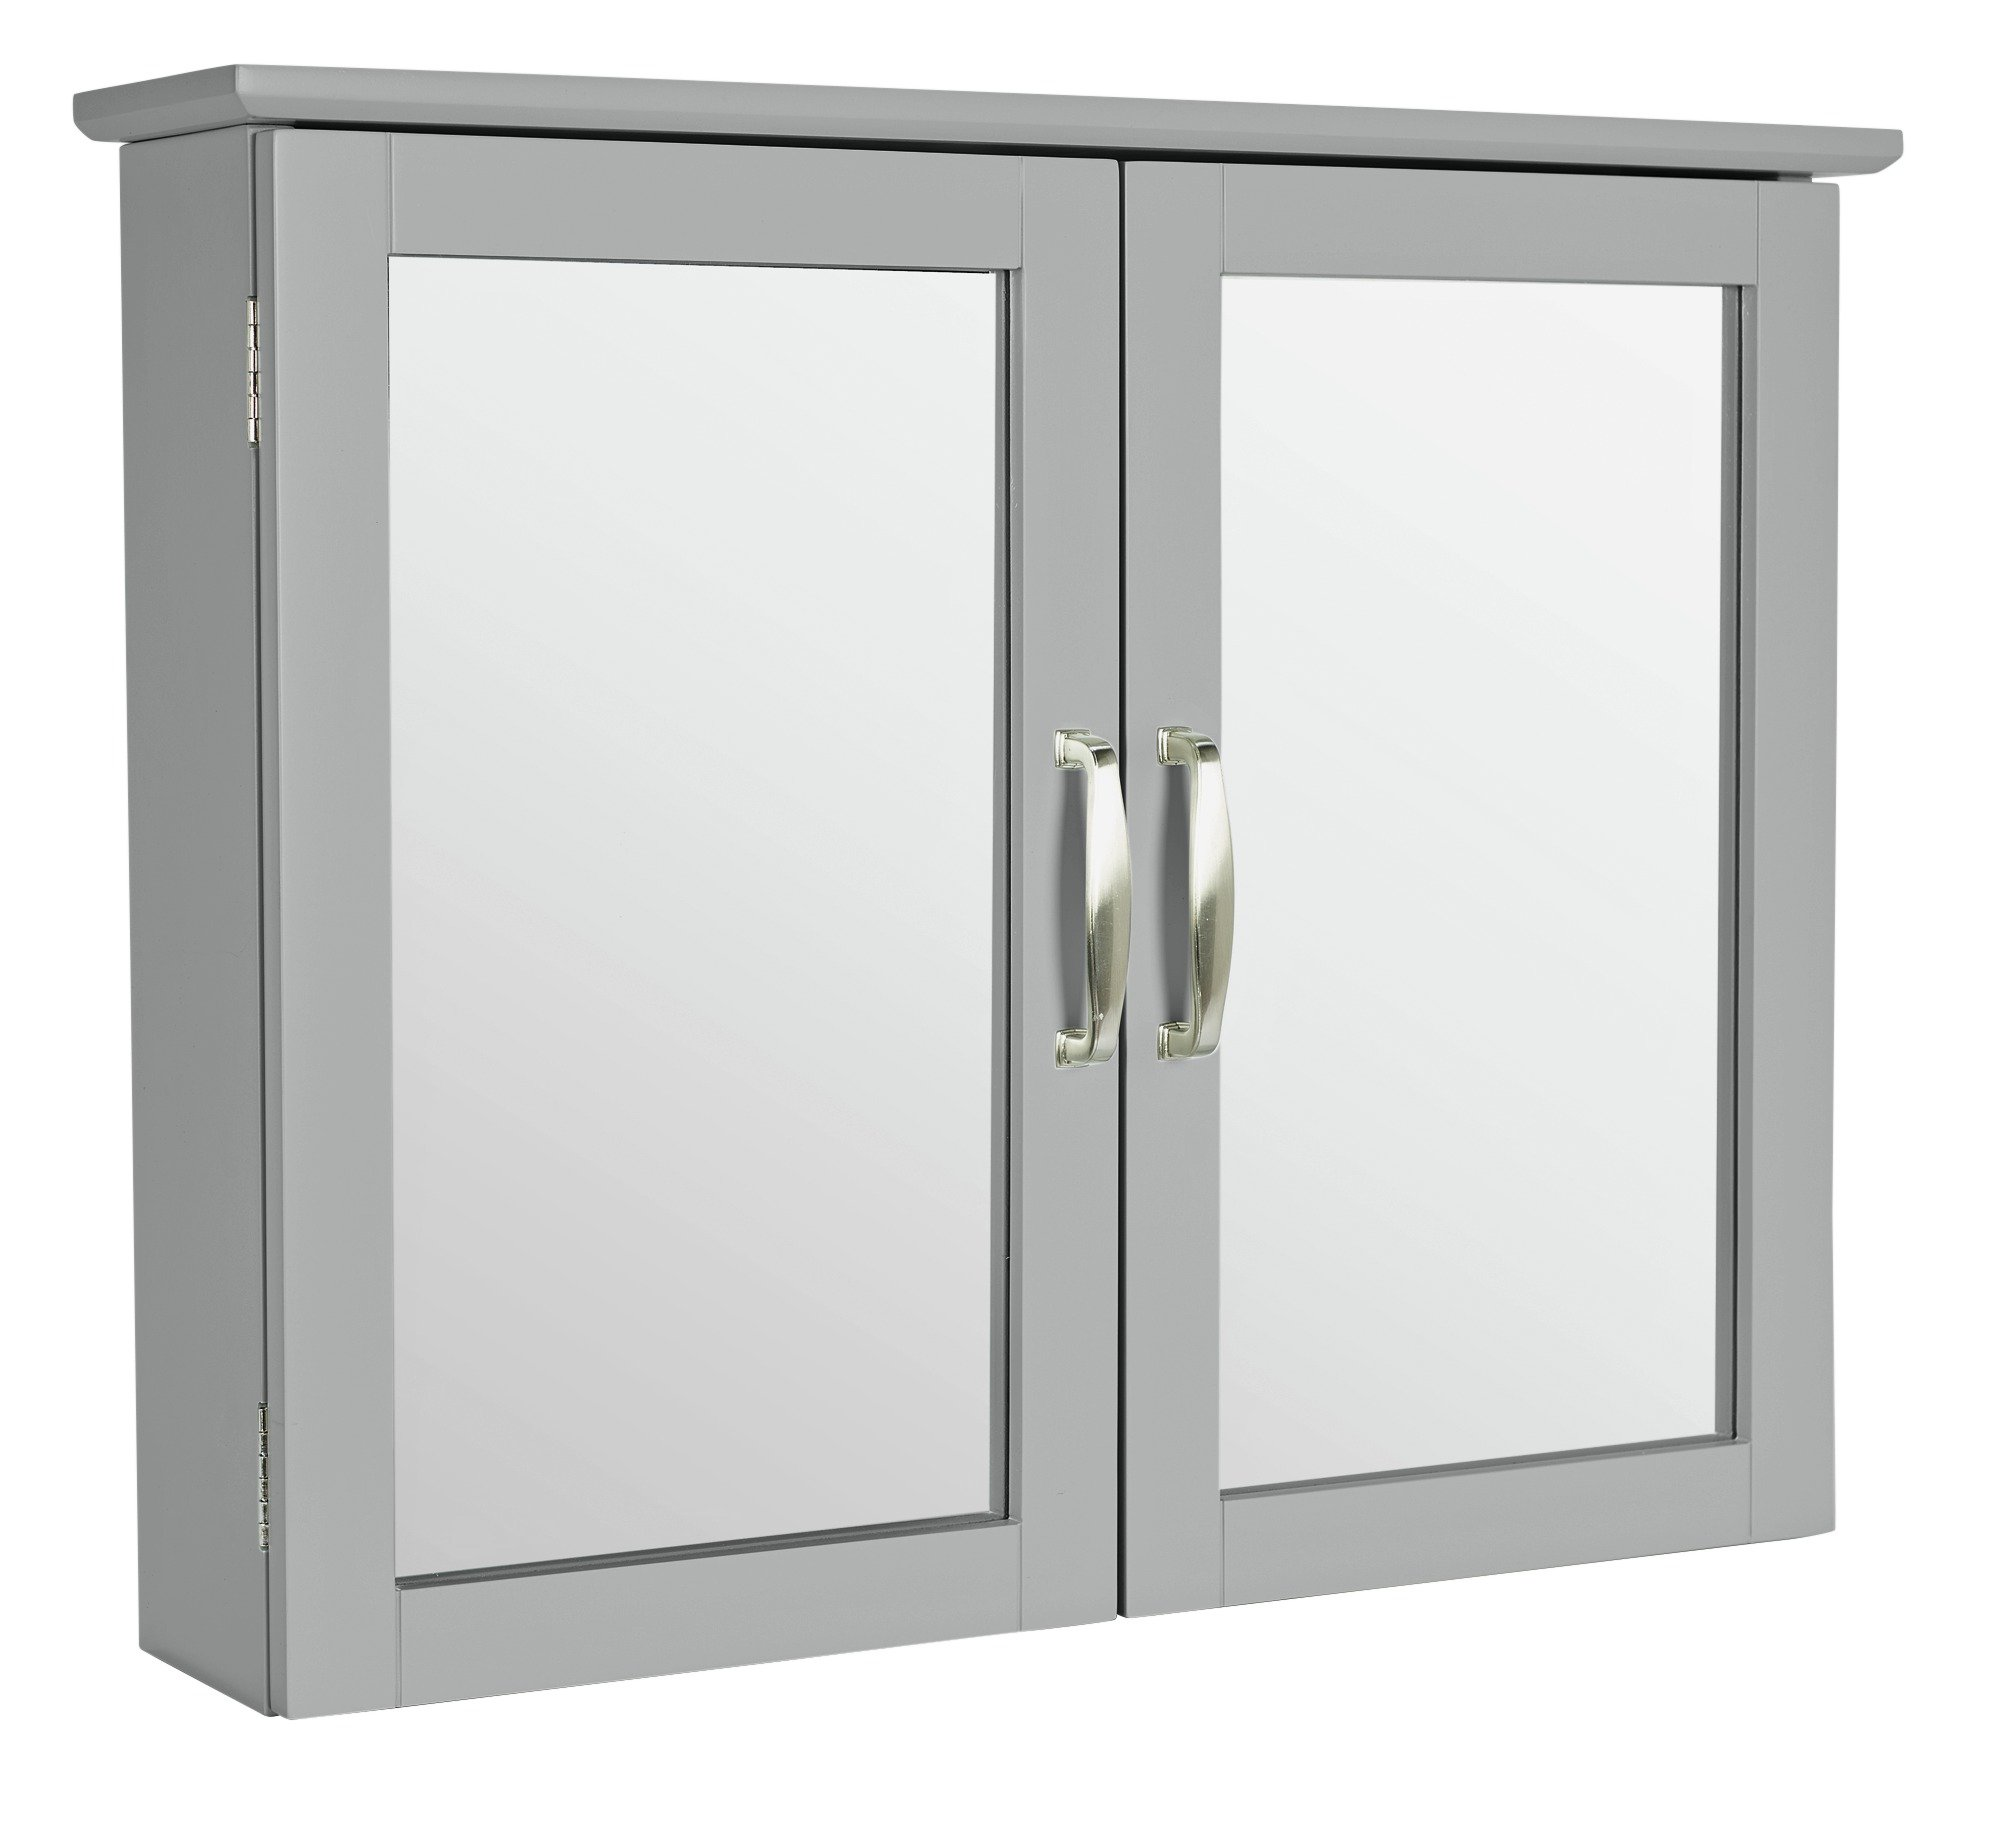 Image of Collection New Tongue and Groove Mirrored Wall Cabinet -Grey